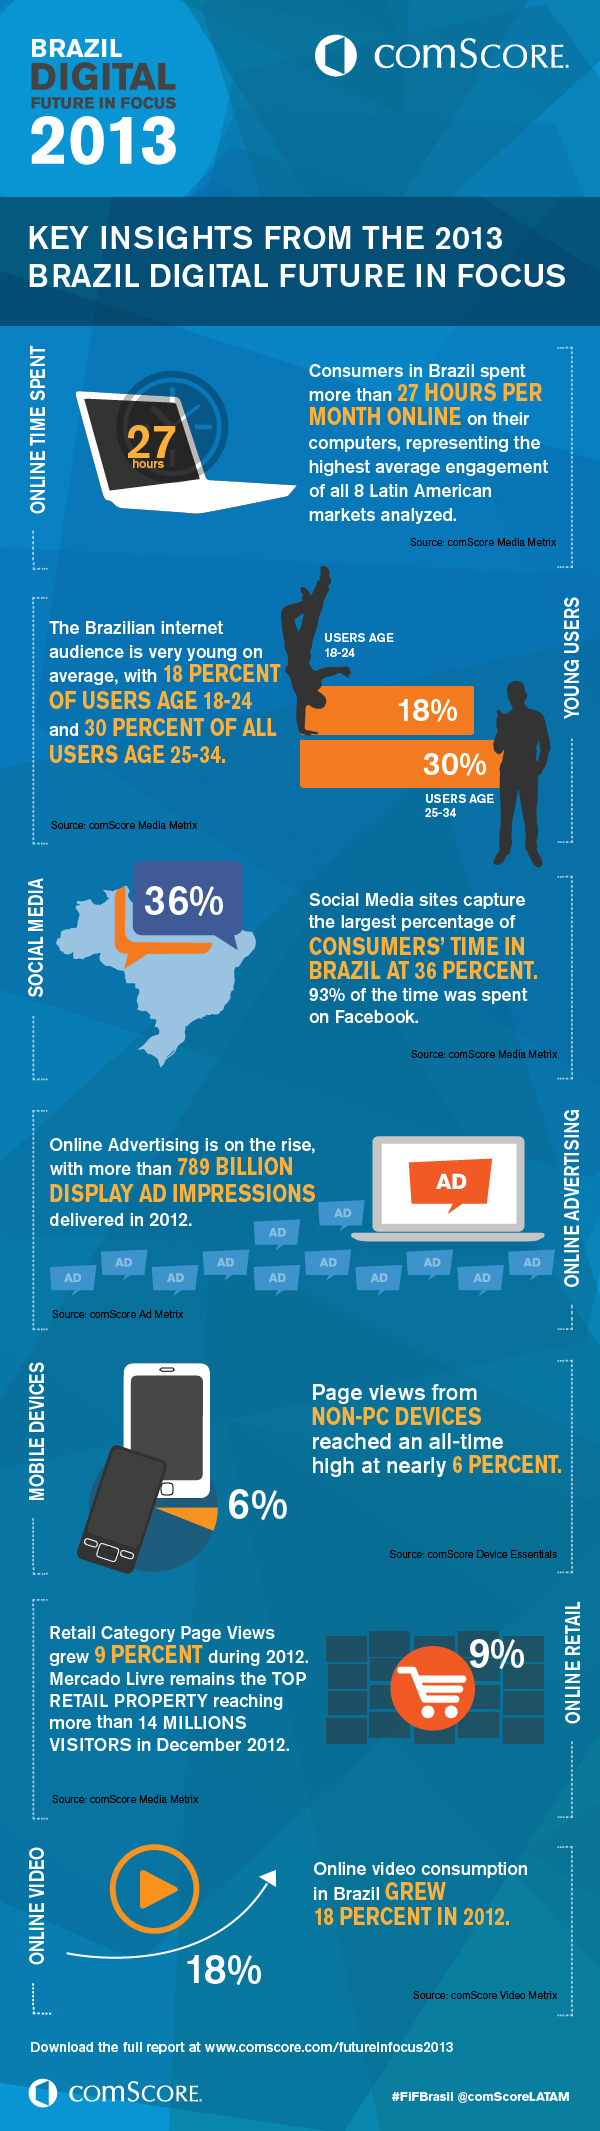 Key Trends That Are Shaping the Brazilian Digital Landscape